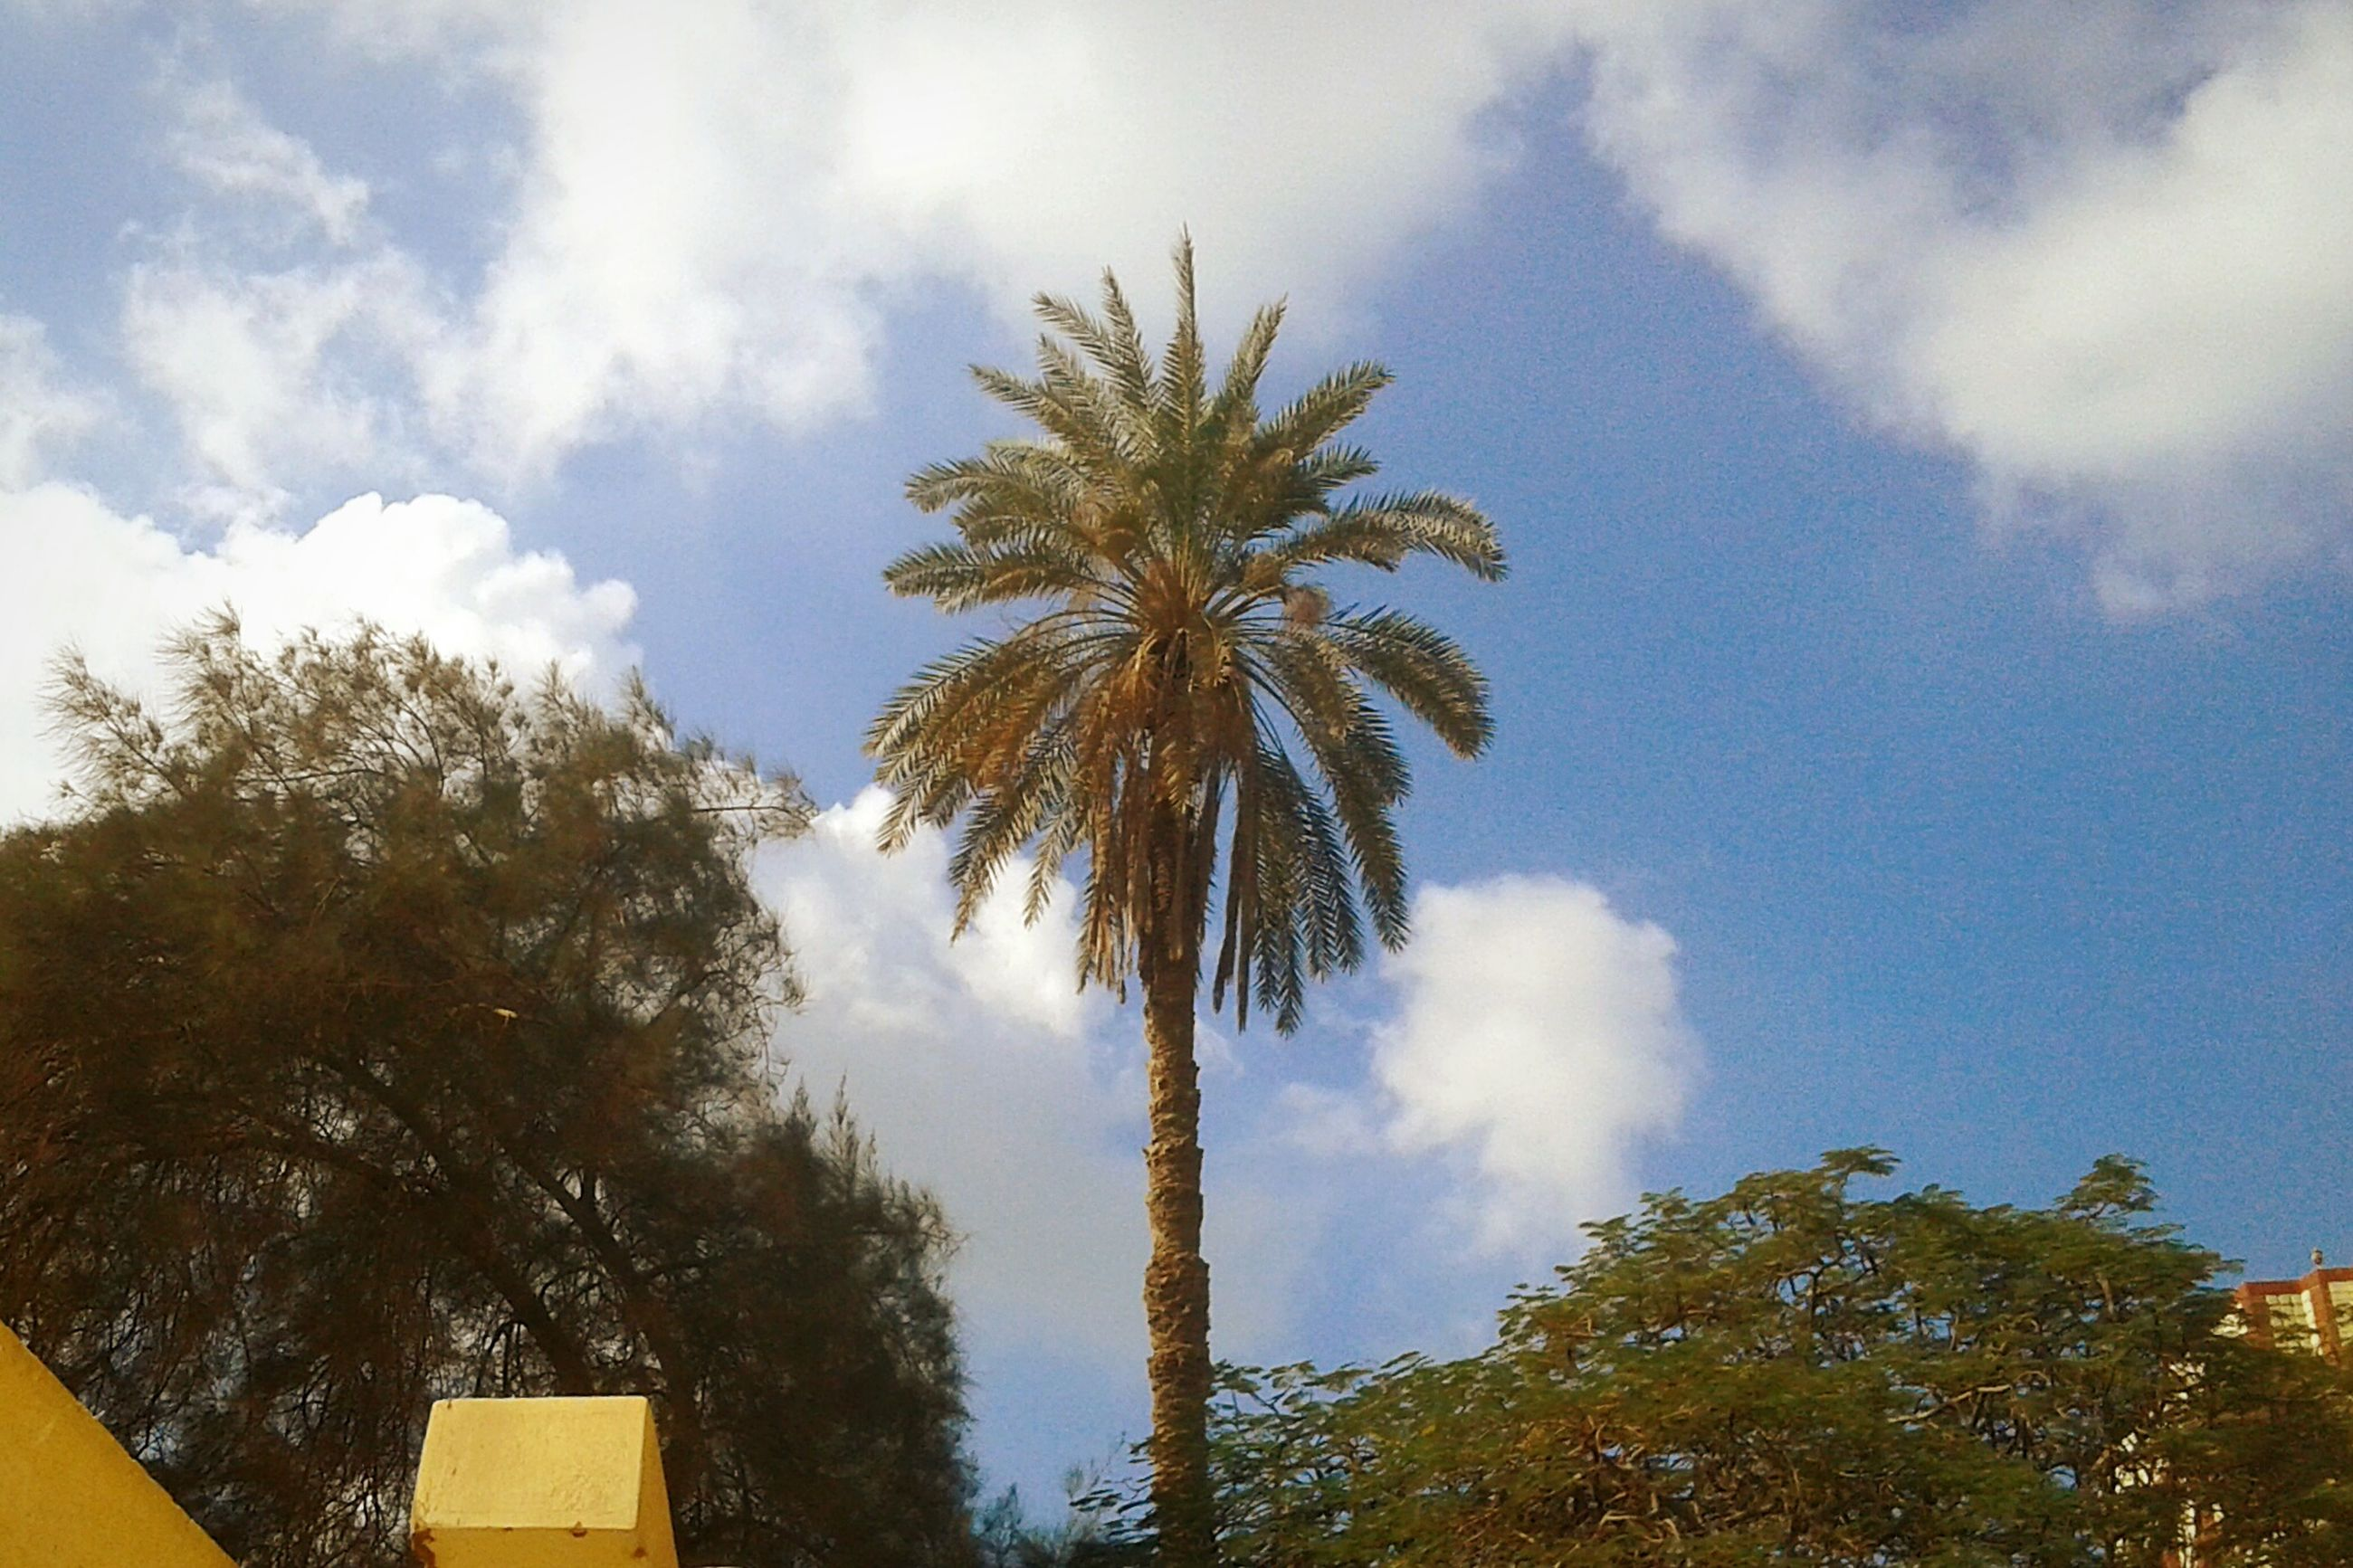 tree, low angle view, palm tree, sky, cloud - sky, no people, growth, nature, outdoors, beauty in nature, day